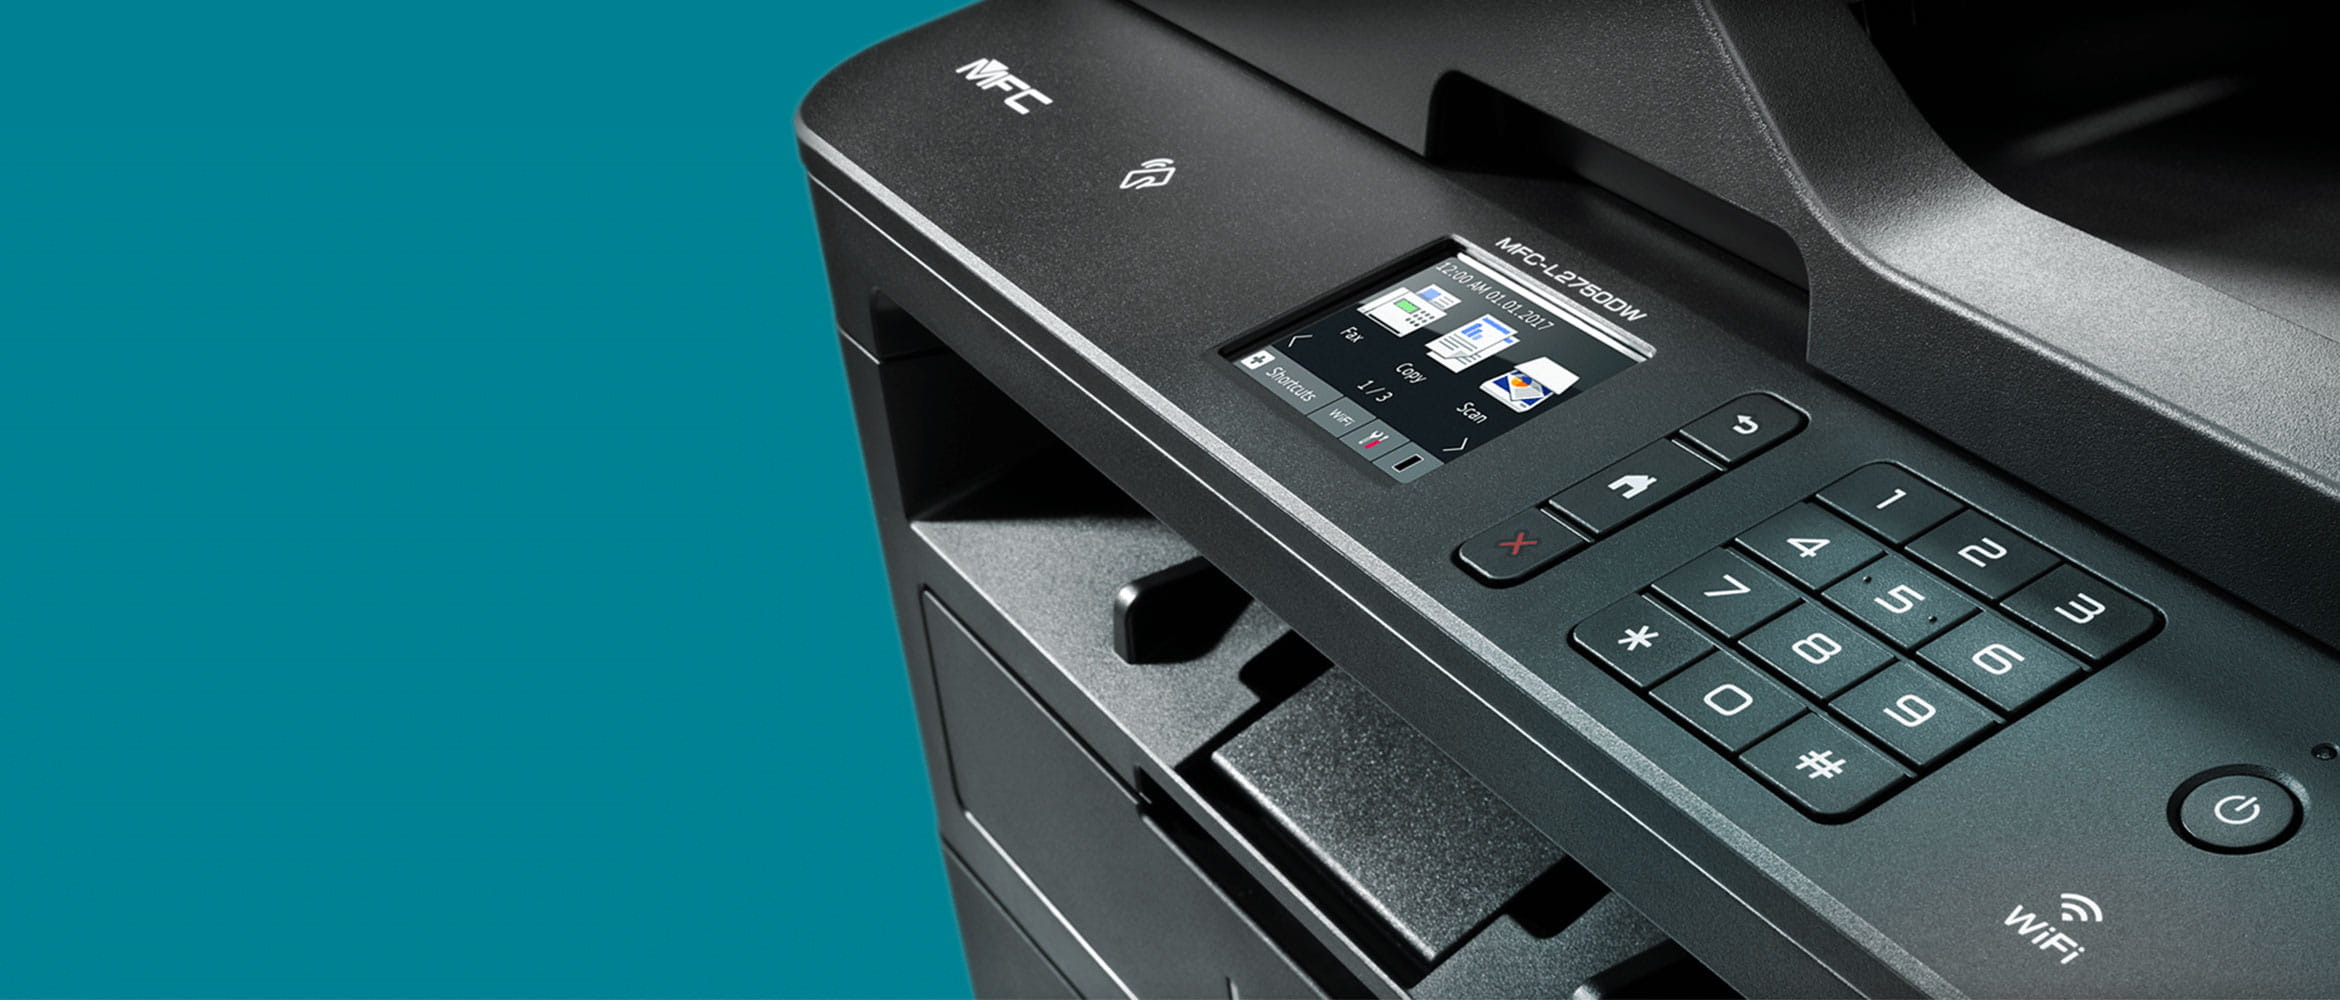 MFC-L2750DW multifunction mono laser printer on teal background